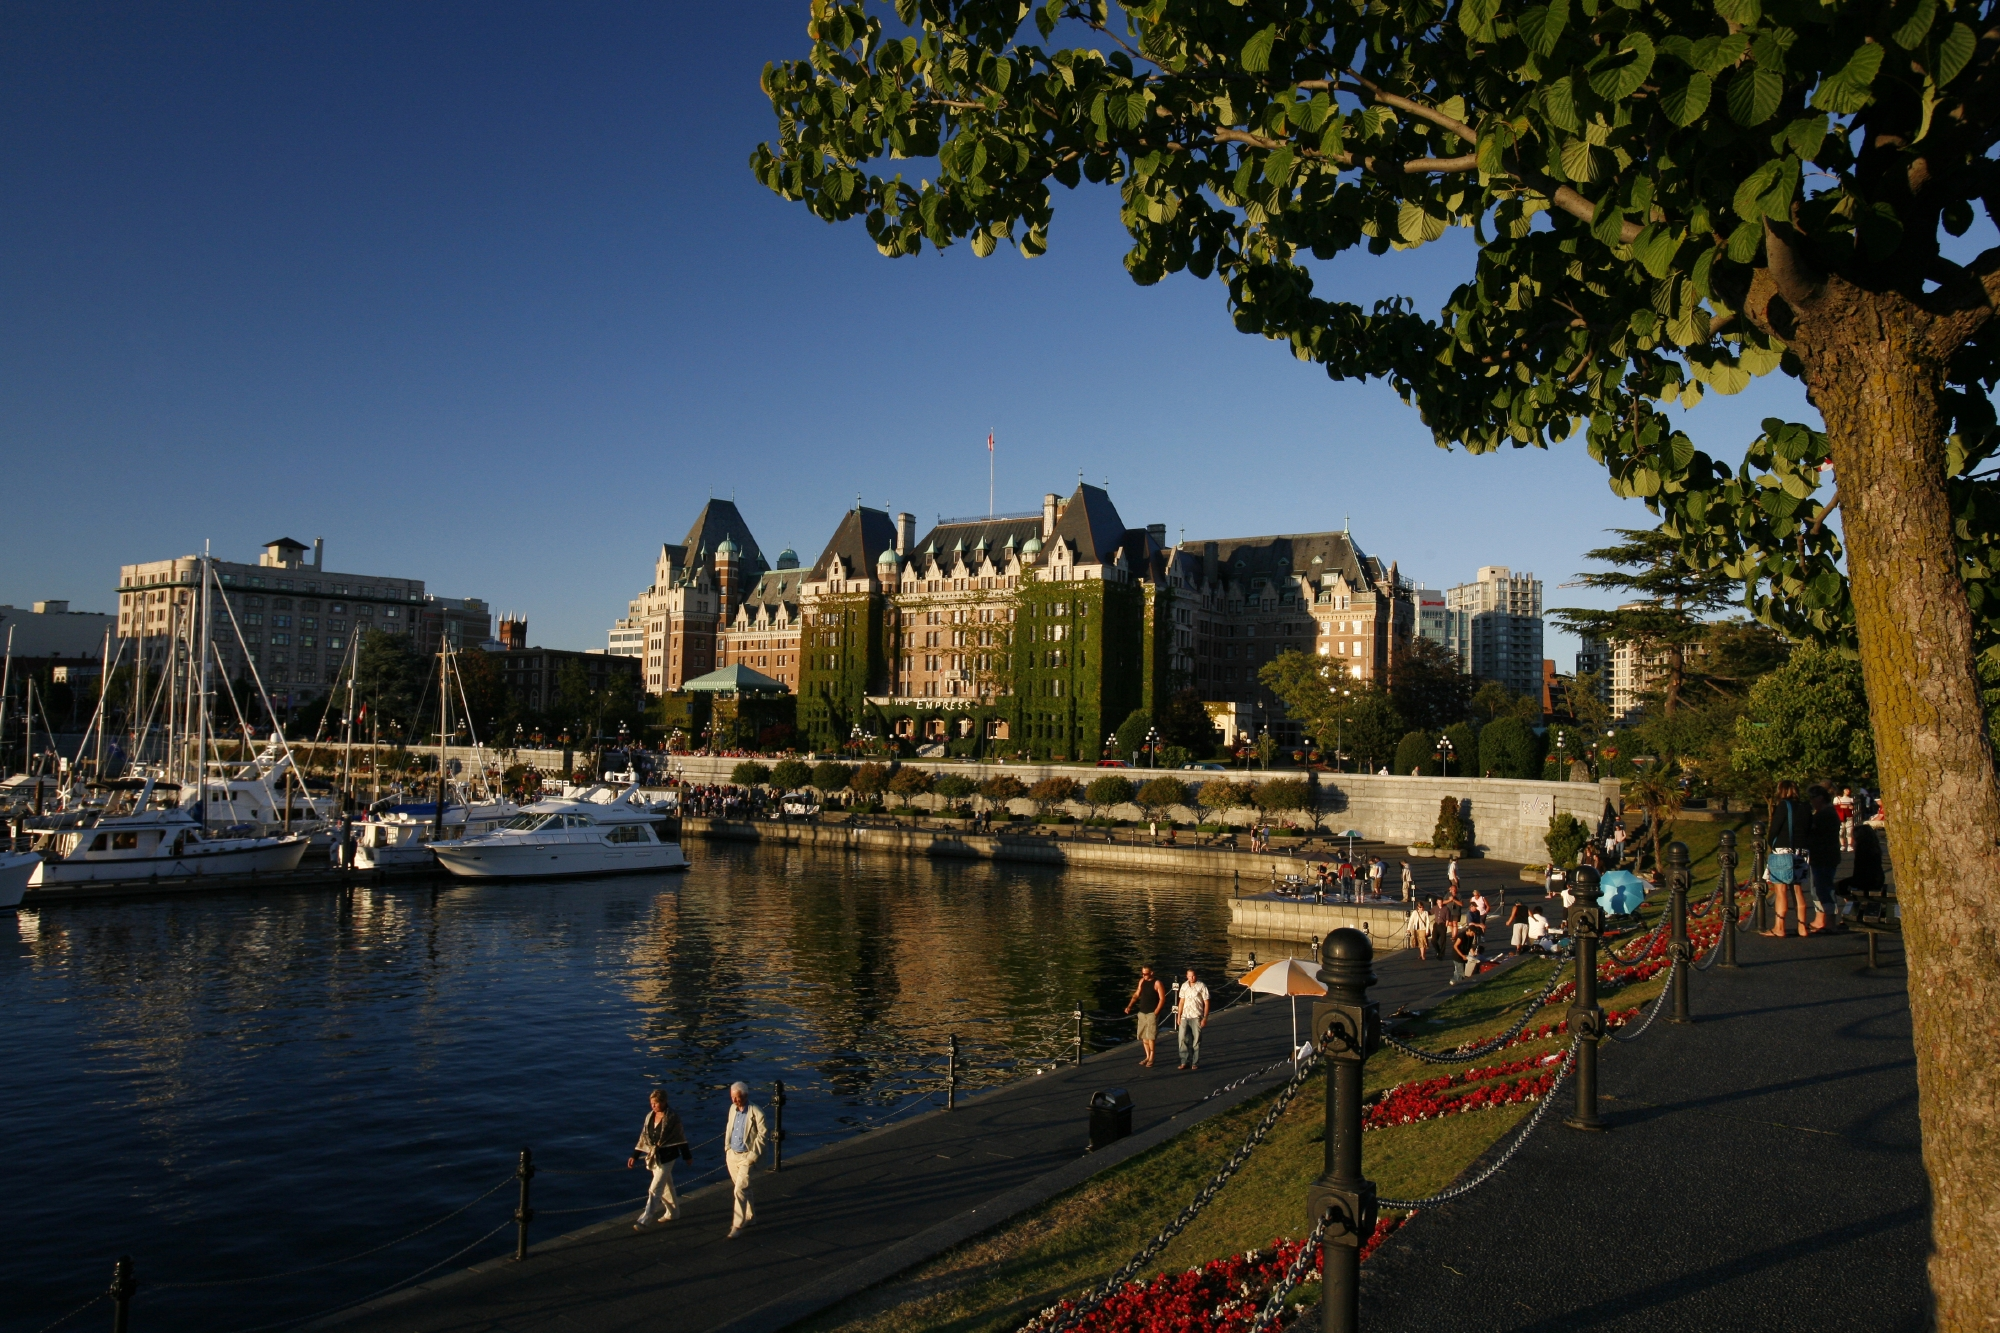 Architect Francis Rattenbury designed the Fairmont Empress Hotel, which opened in 1908.